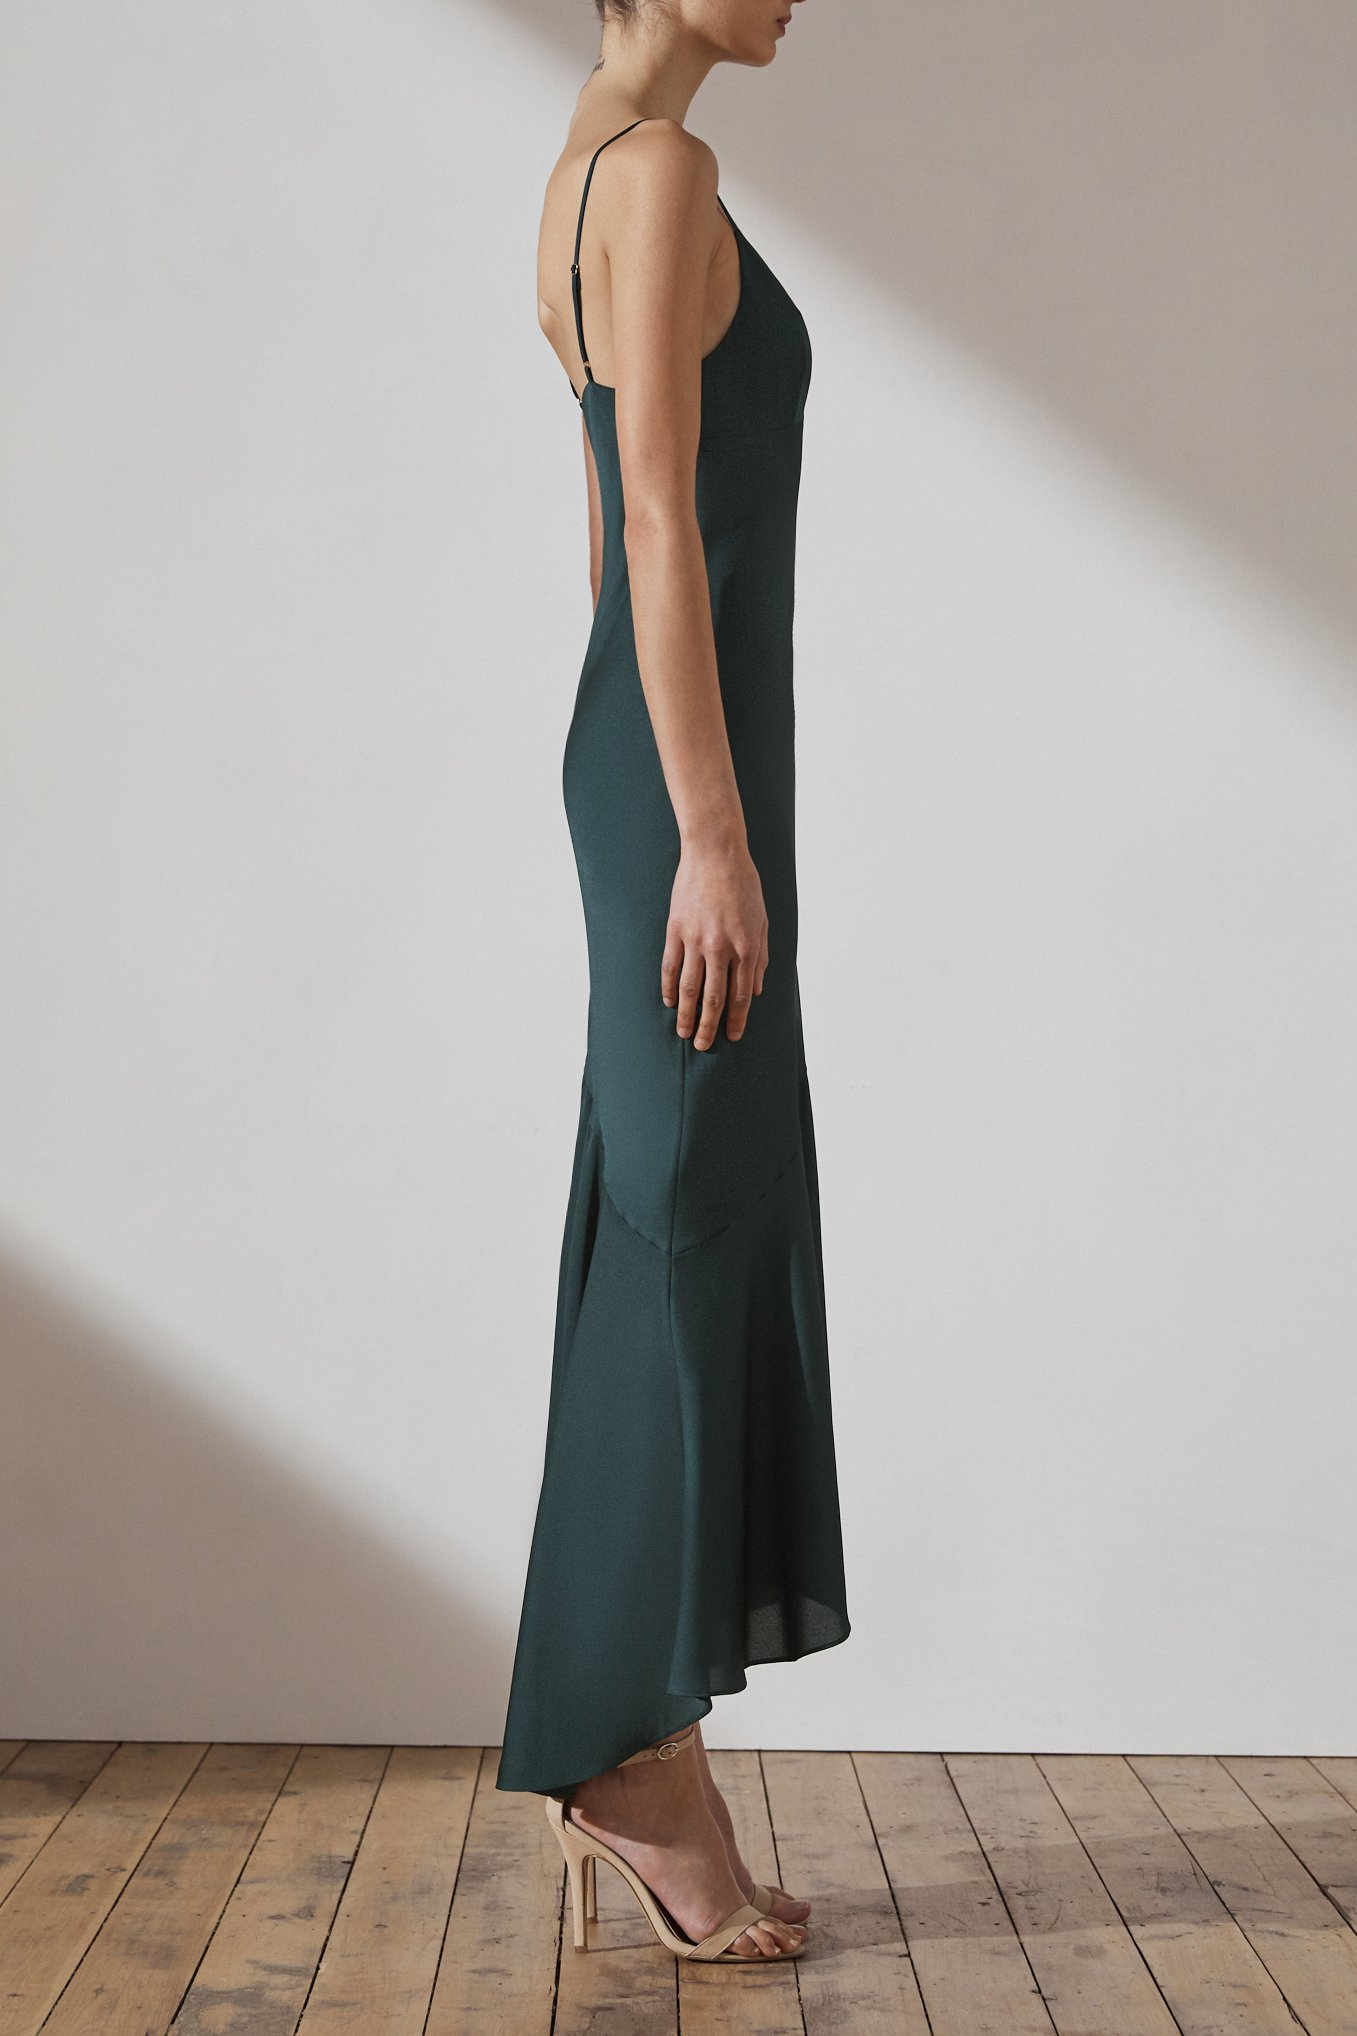 Jamie Luxe Bias Asymmetrical Slip Dress By Shona Joy - Emerald